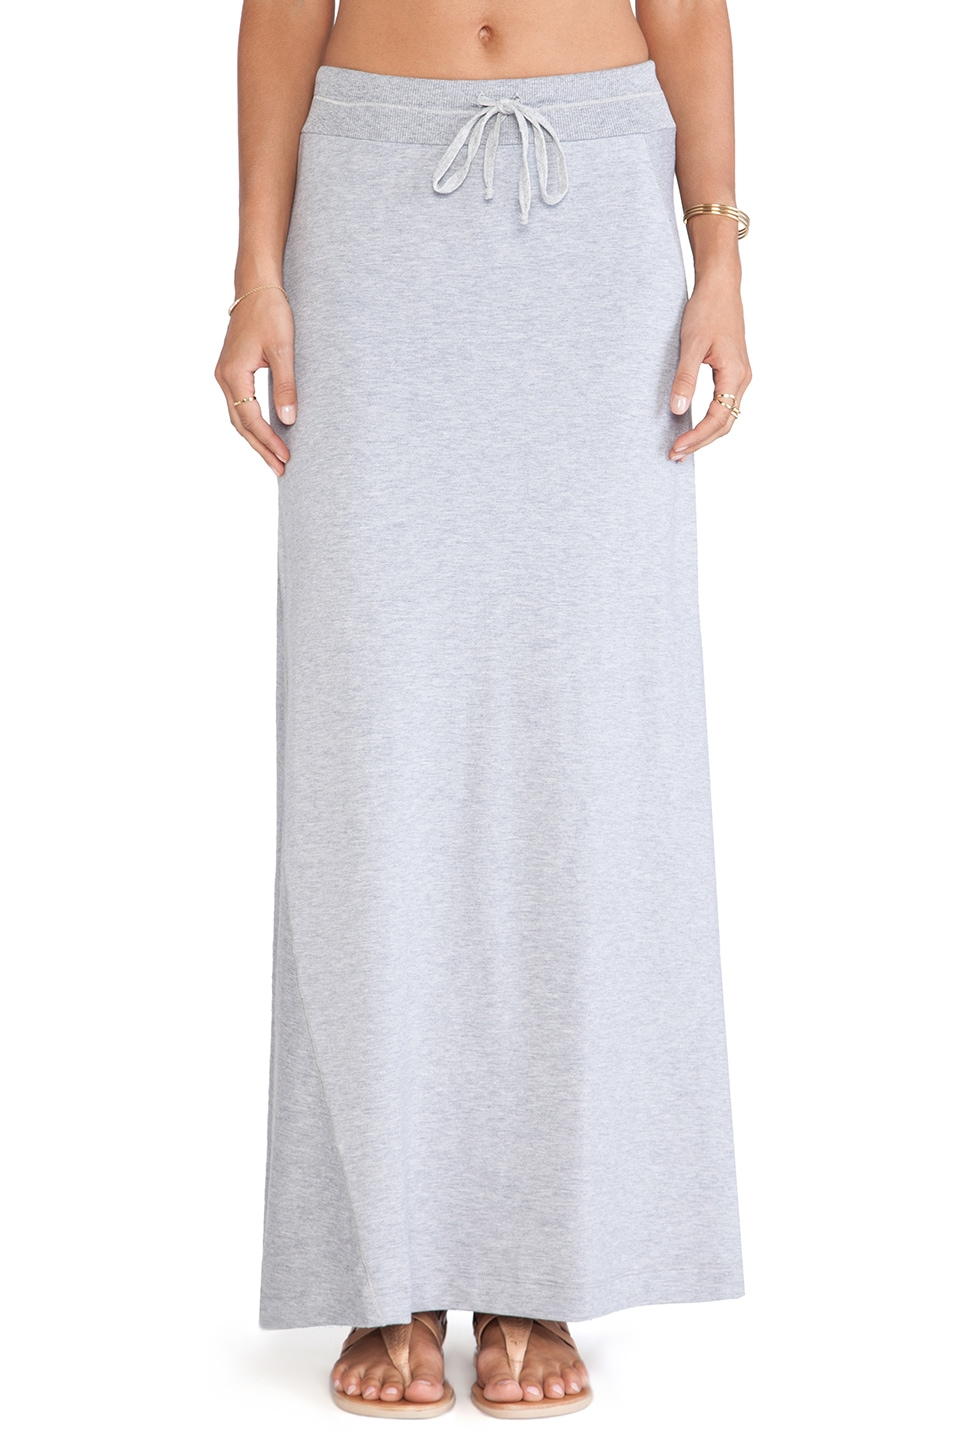 Splendid Slub French Terry Maxi Skirt in Heather Grey